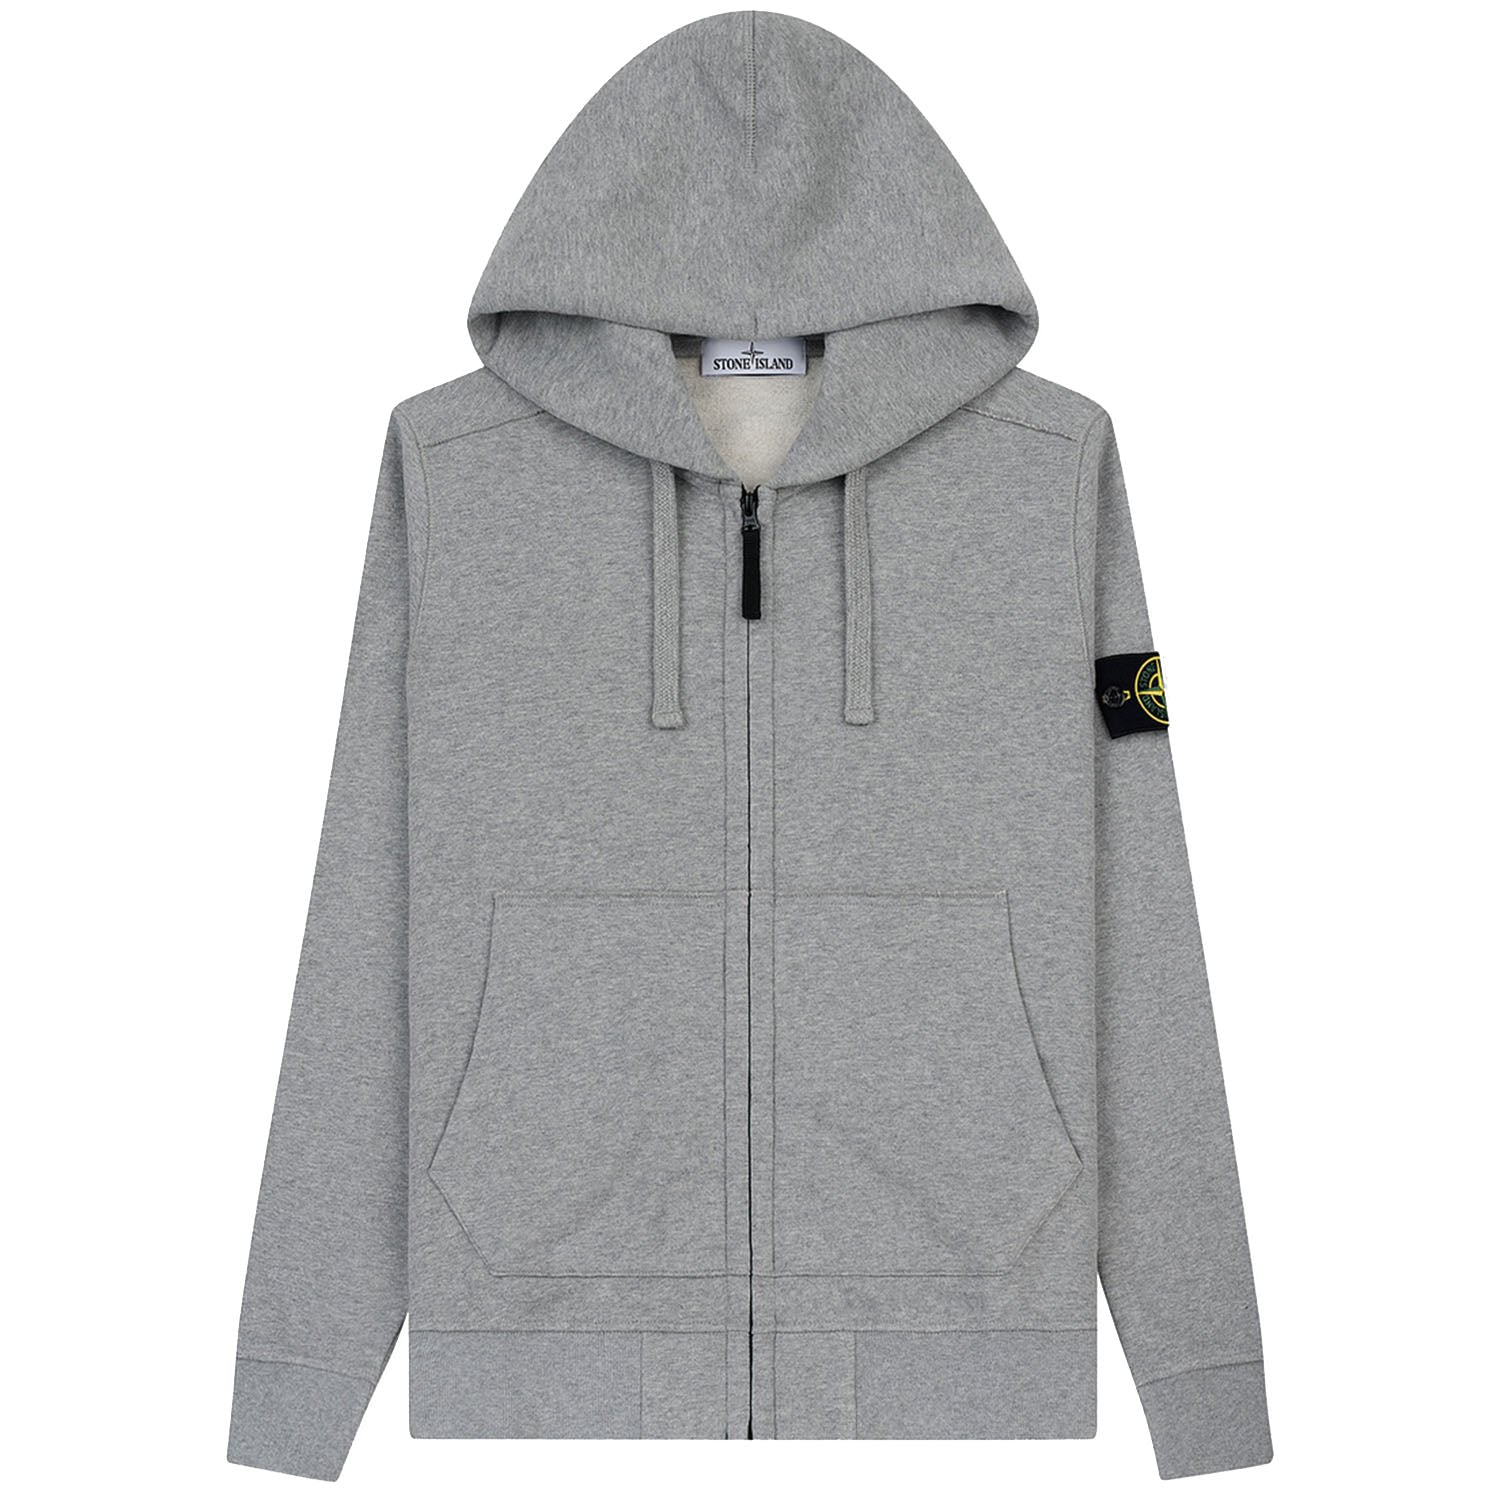 Stone Island Zip Up Sweatshirt